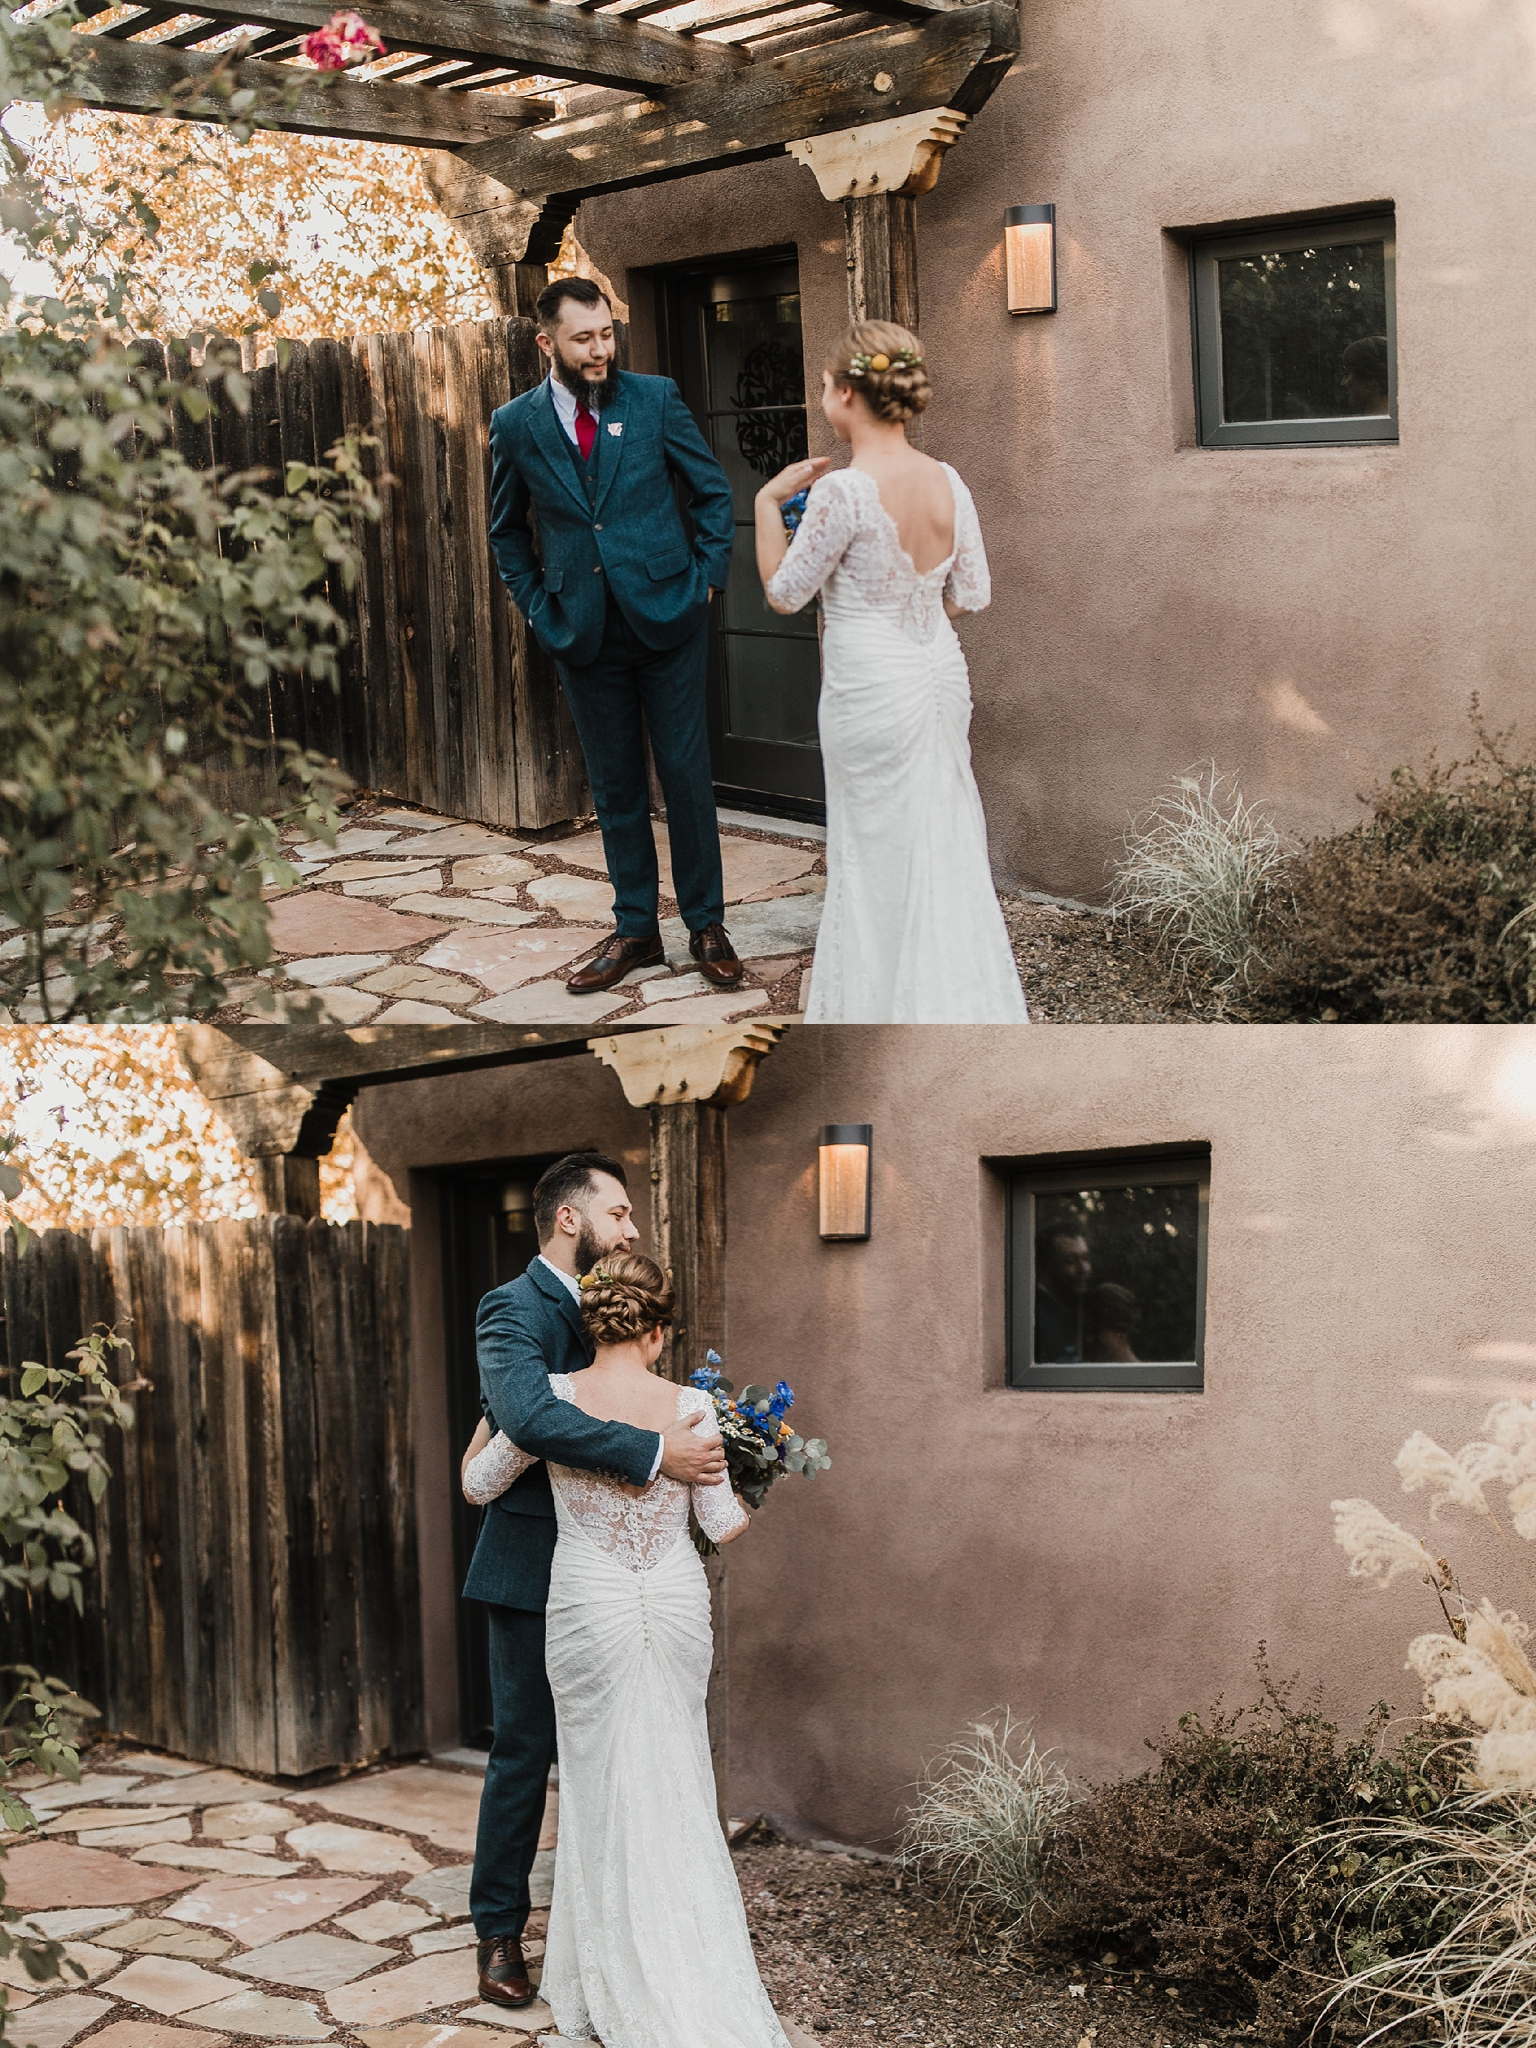 Alicia+lucia+photography+-+albuquerque+wedding+photographer+-+santa+fe+wedding+photography+-+new+mexico+wedding+photographer+-+new+mexico+wedding+-+wedding+venues+-+new+mexico+wedding+venues+-+colorado+wedding+venues_0003.jpg